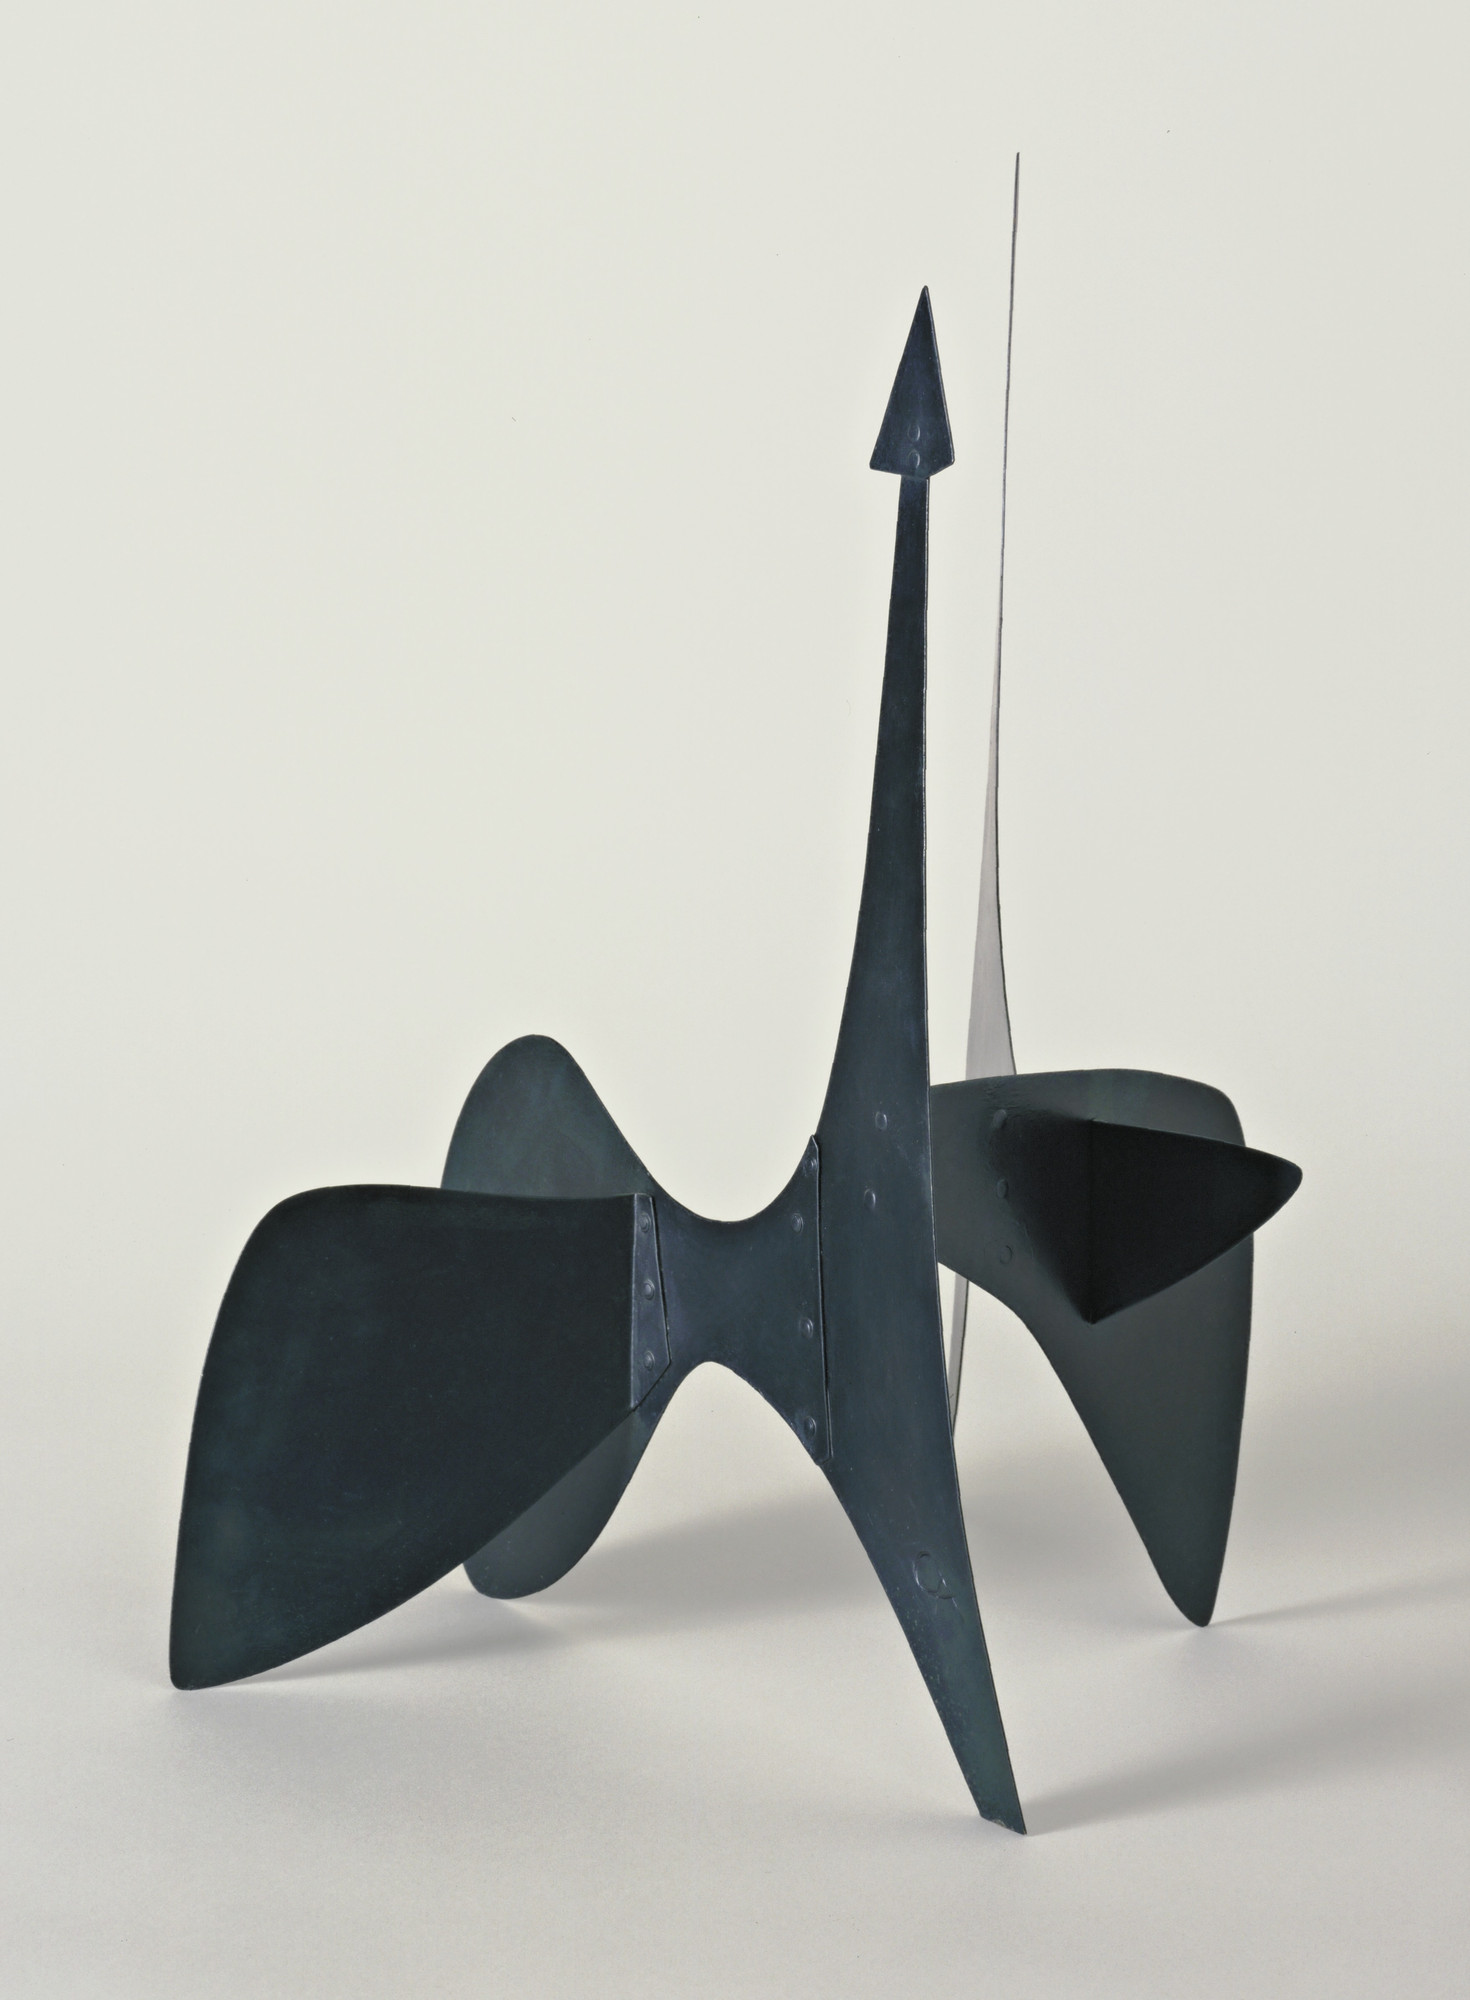 Alexander Calder. Model for Teodelapio. 1962